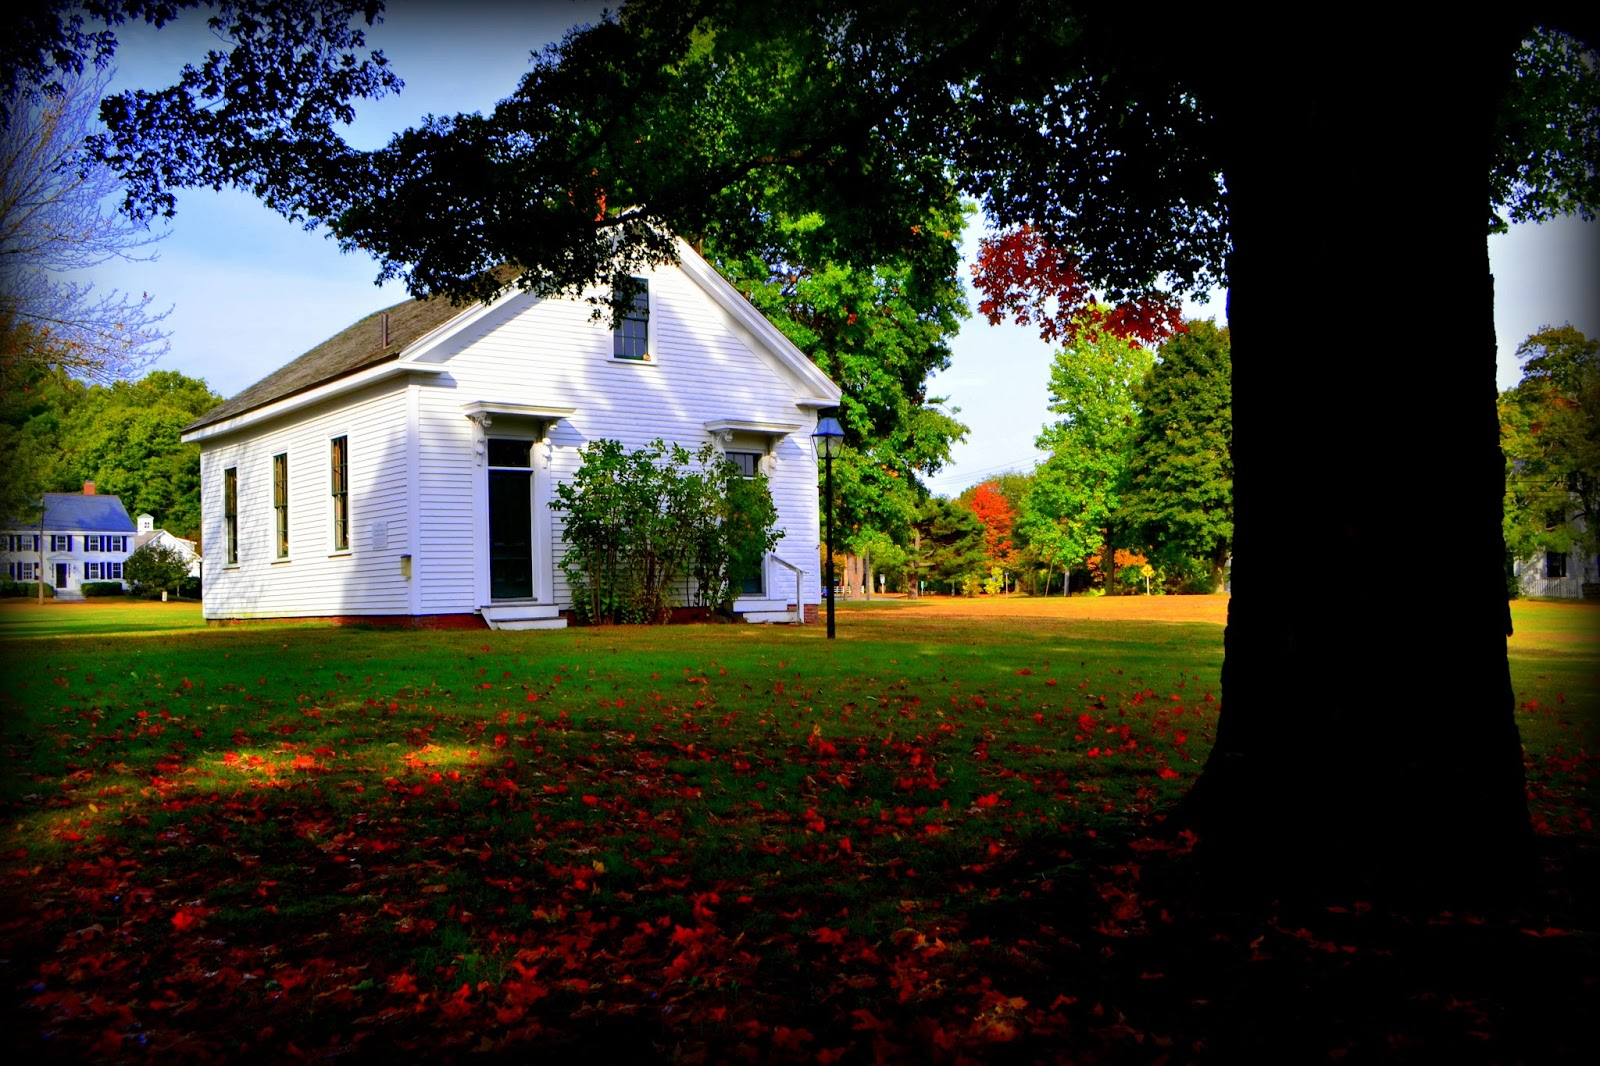 One Room Schoolhouse, Common, Newbury, trees, color, fall, foliage